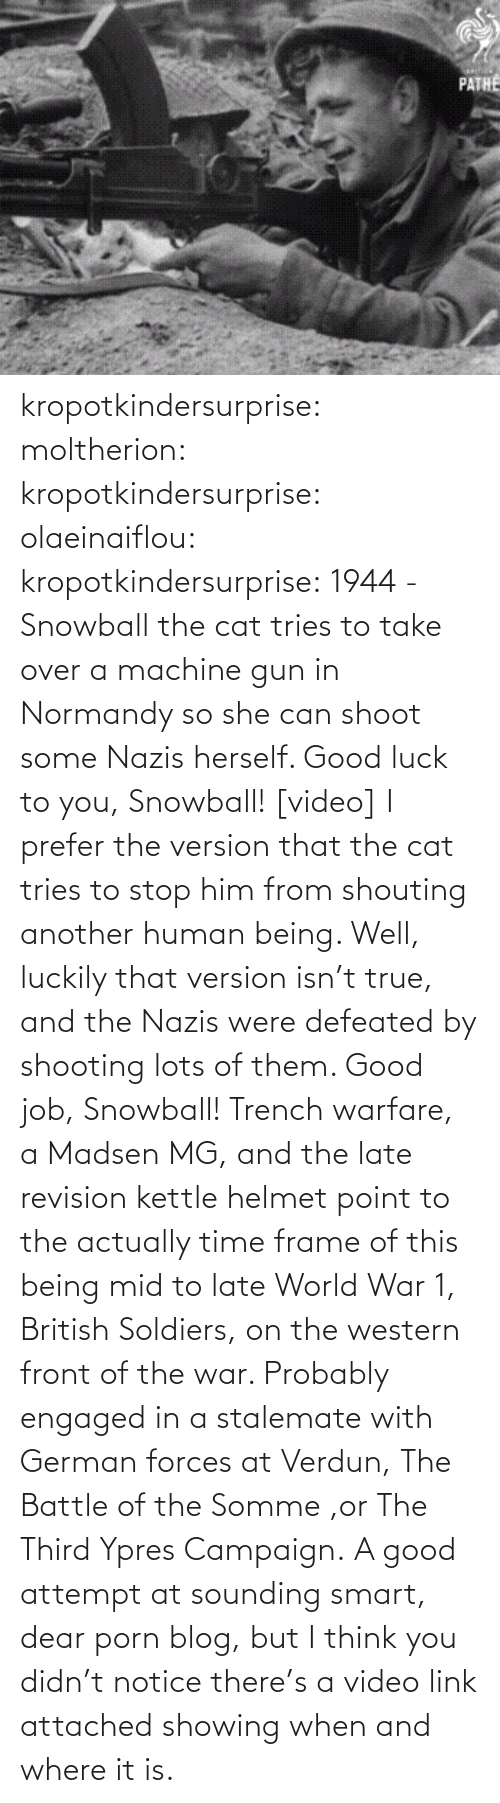 Showing: PATHE kropotkindersurprise: moltherion:  kropotkindersurprise:  olaeinaiflou:  kropotkindersurprise: 1944 - Snowball the cat tries to take over a machine gun in Normandy so she can shoot some Nazis herself. Good luck to you, Snowball! [video]  I prefer the version that the cat tries to stop him from shouting another human being.   Well, luckily that version isn't true, and the Nazis were defeated by shooting lots of them. Good job, Snowball!   Trench warfare, a Madsen MG, and the late revision kettle helmet point to the actually time frame of this being mid to late World War 1, British Soldiers, on the western front of the war. Probably engaged in a stalemate with German forces at Verdun, The Battle of the Somme ,or The Third Ypres Campaign.  A good attempt at sounding smart, dear porn blog, but I think you didn't notice there's a video link attached showing when and where it is.